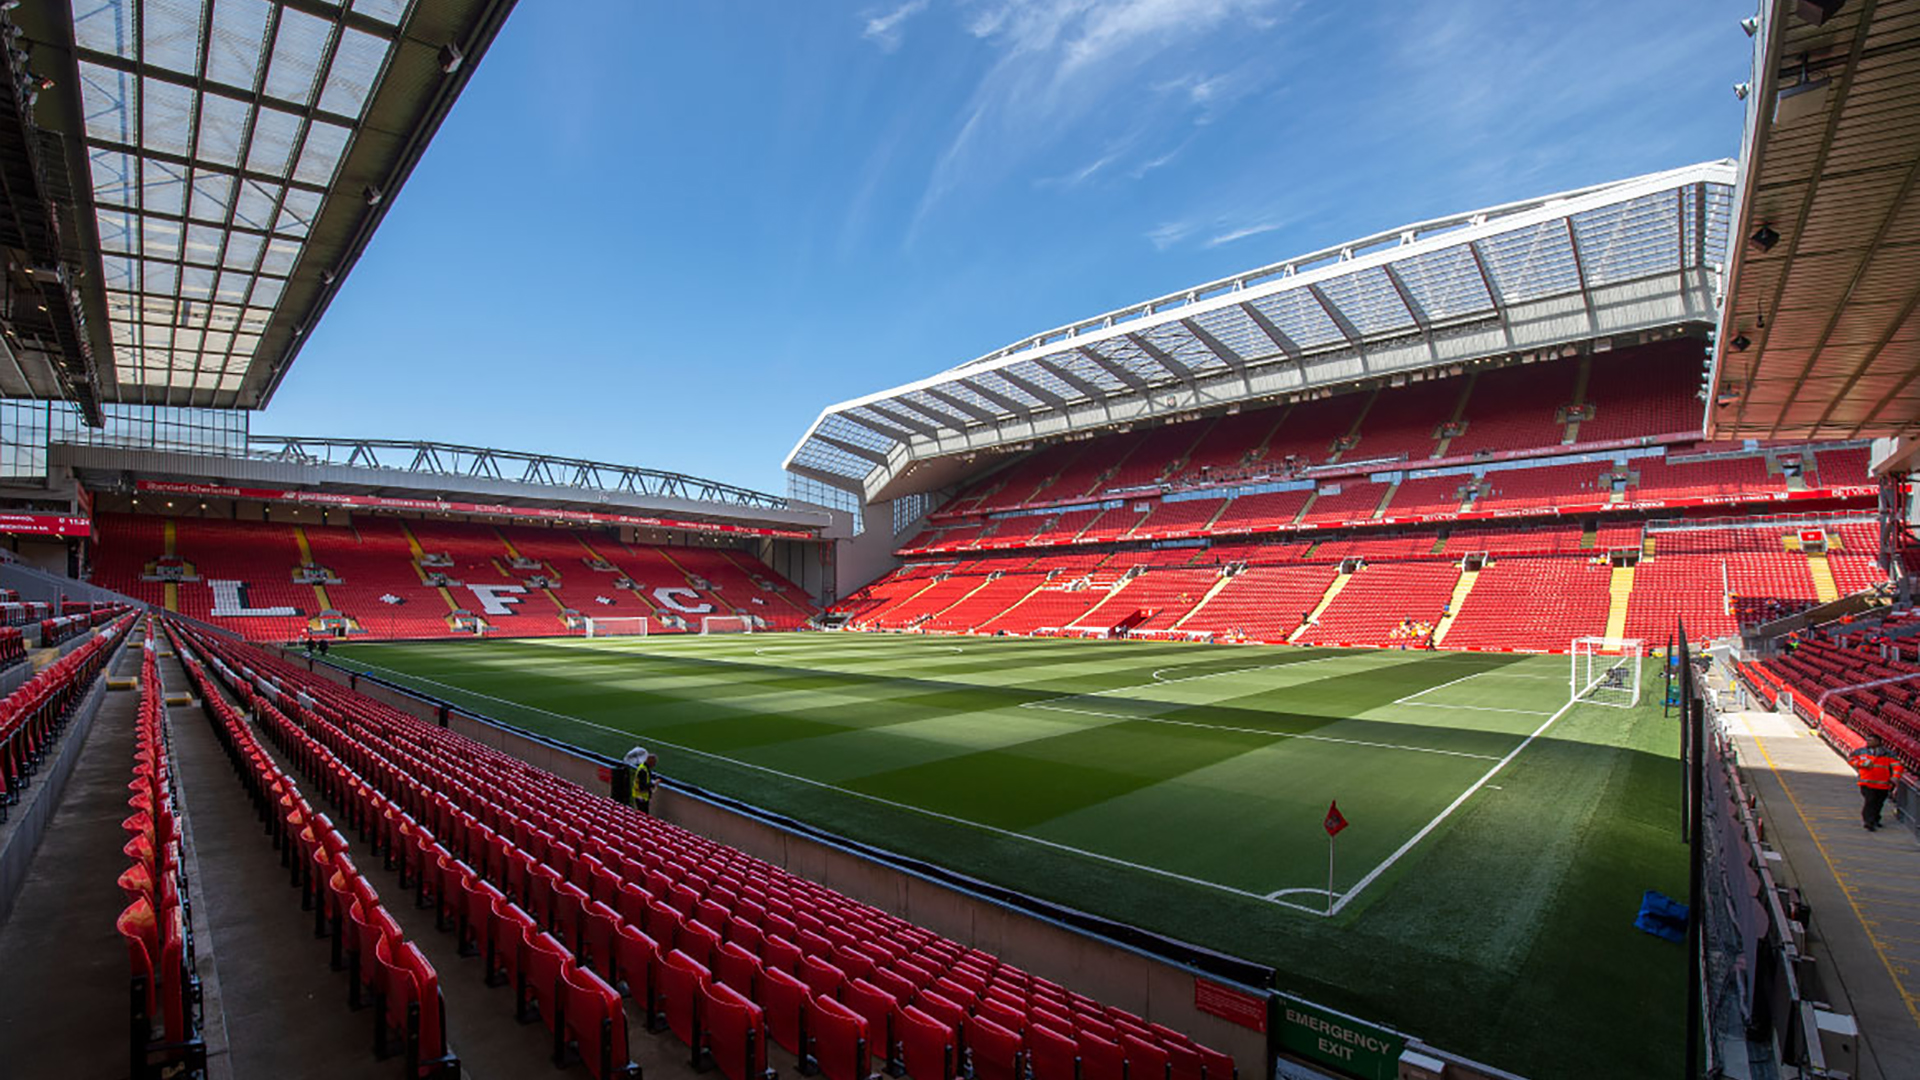 Anfield Stadium. Virtual background to use on Zoom, Microsoft Teams, Skype, Google Meet, WebEx or any other compatible app.